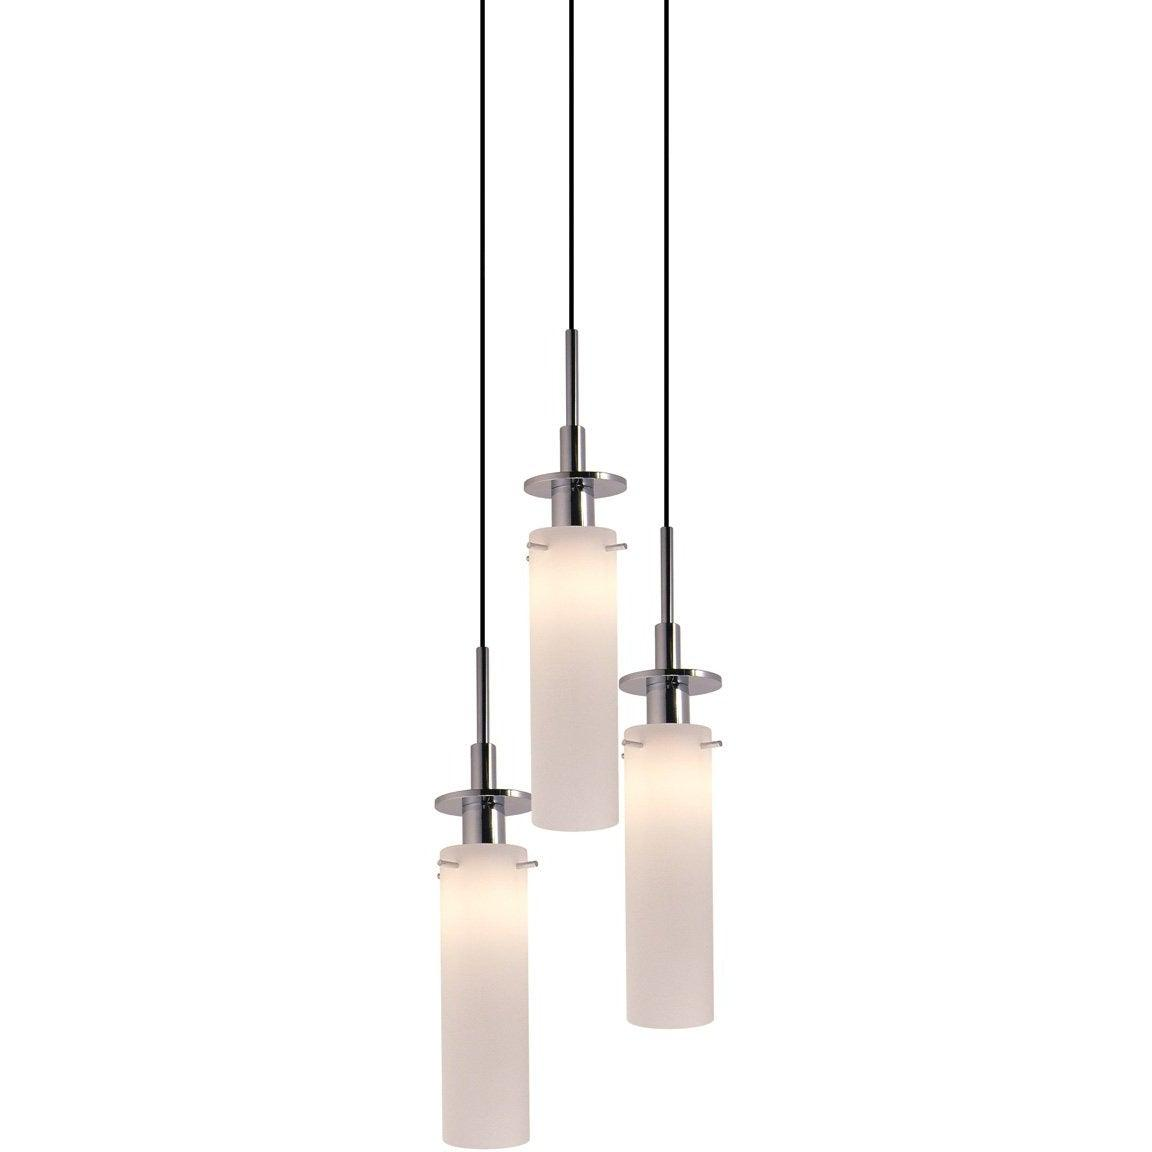 Sonneman - A Way of Light - 3034.01 - Three Light Pendant - Candle - Polished Chrome